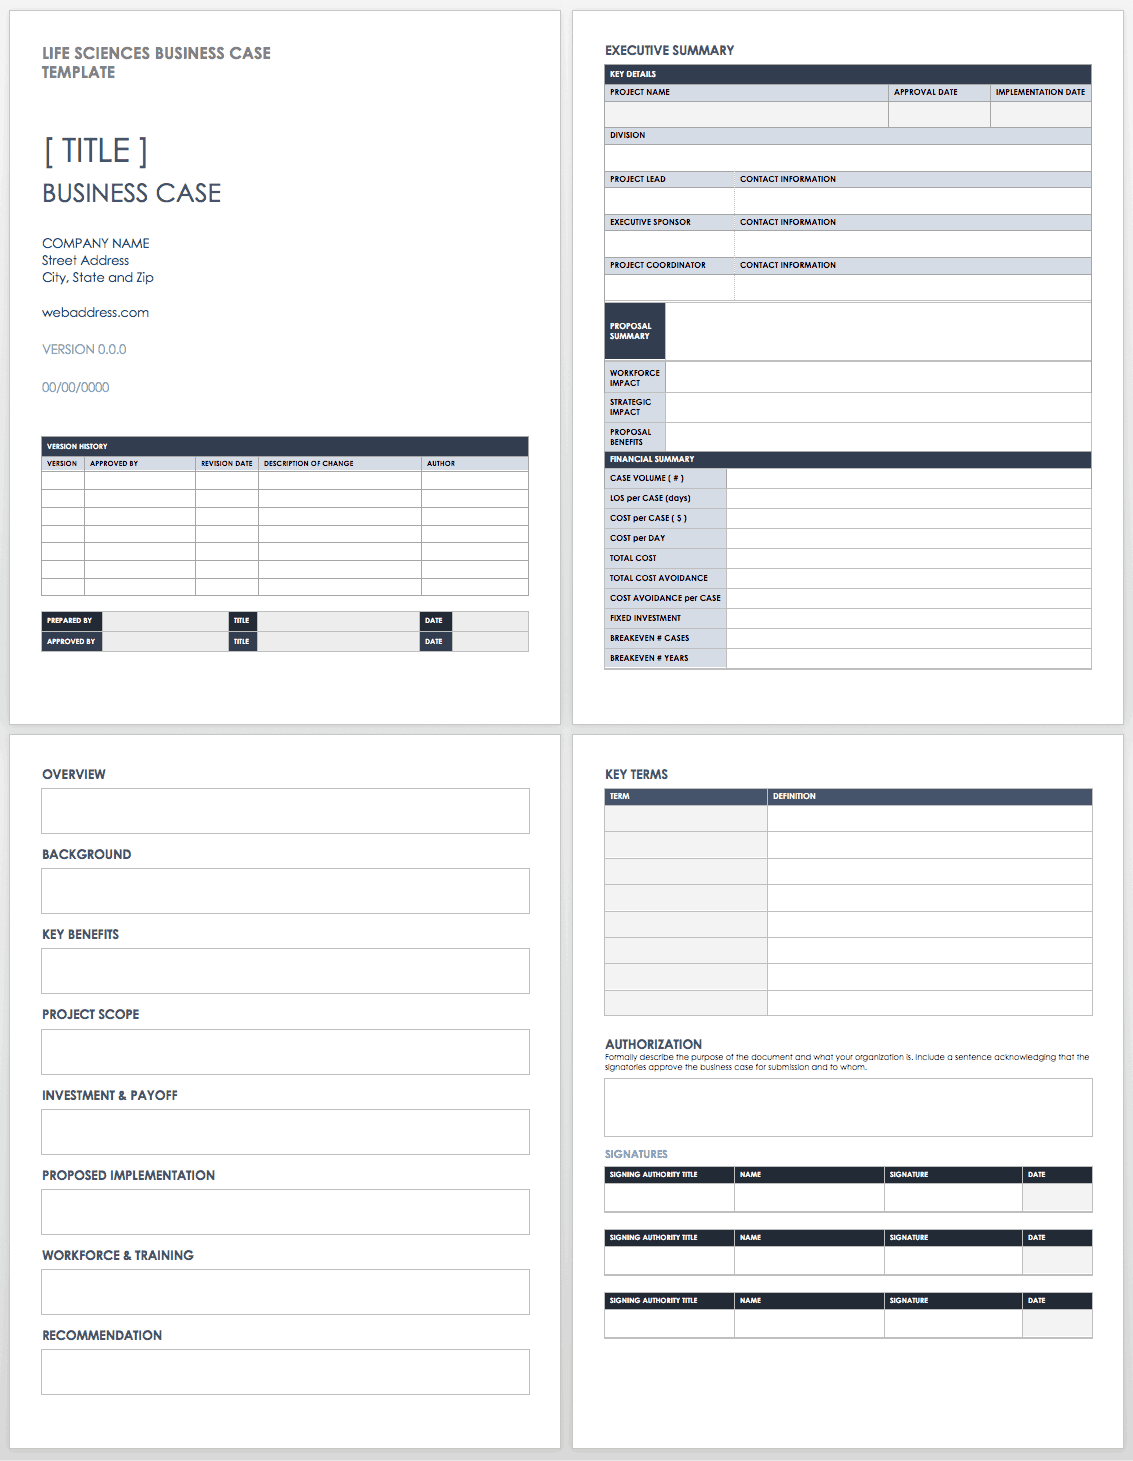 Free business case templates smartsheet life sciences business case cheaphphosting